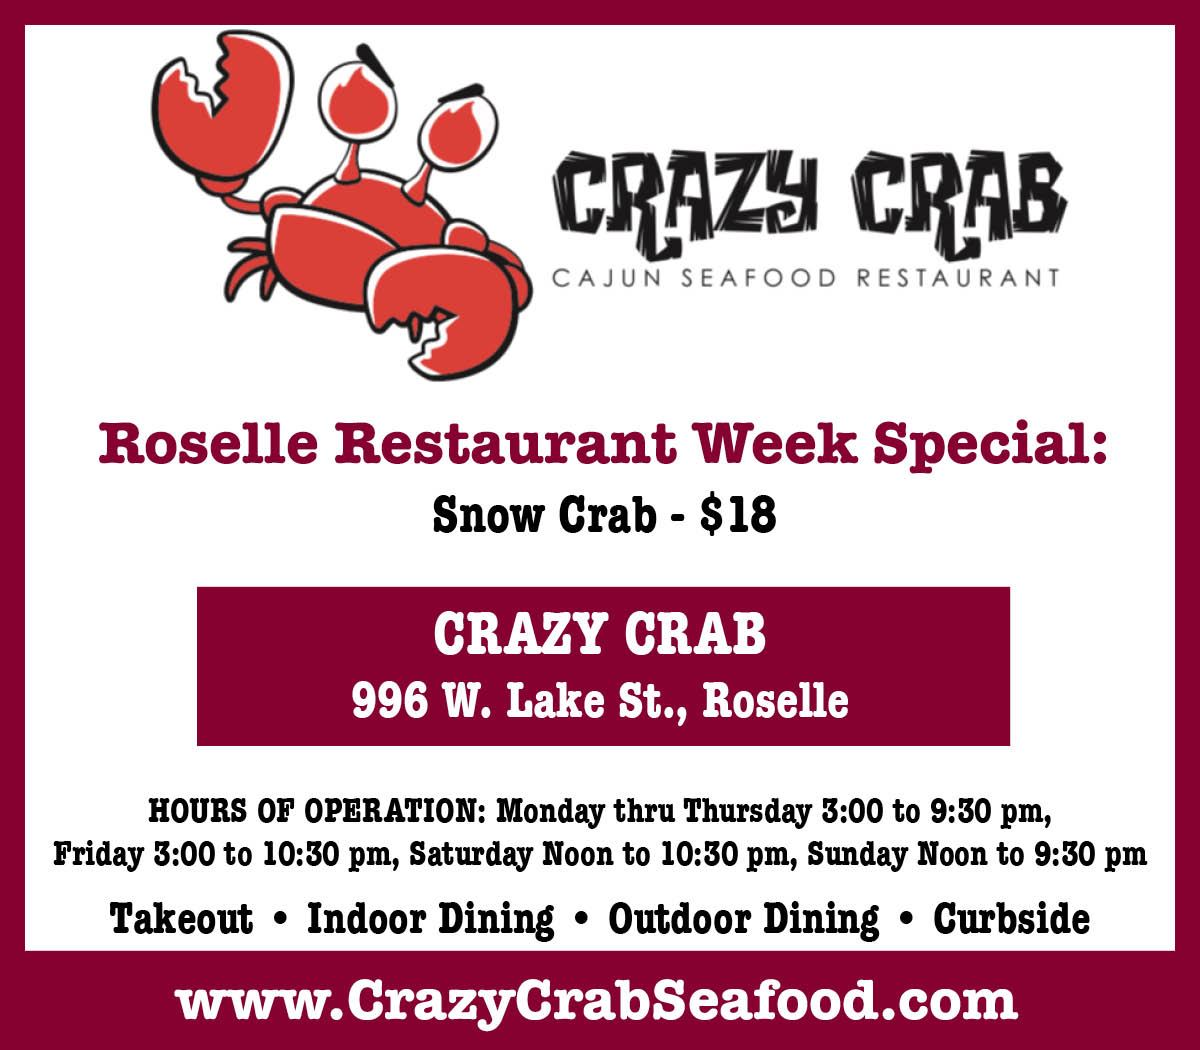 Crazy Crab Opens in new window